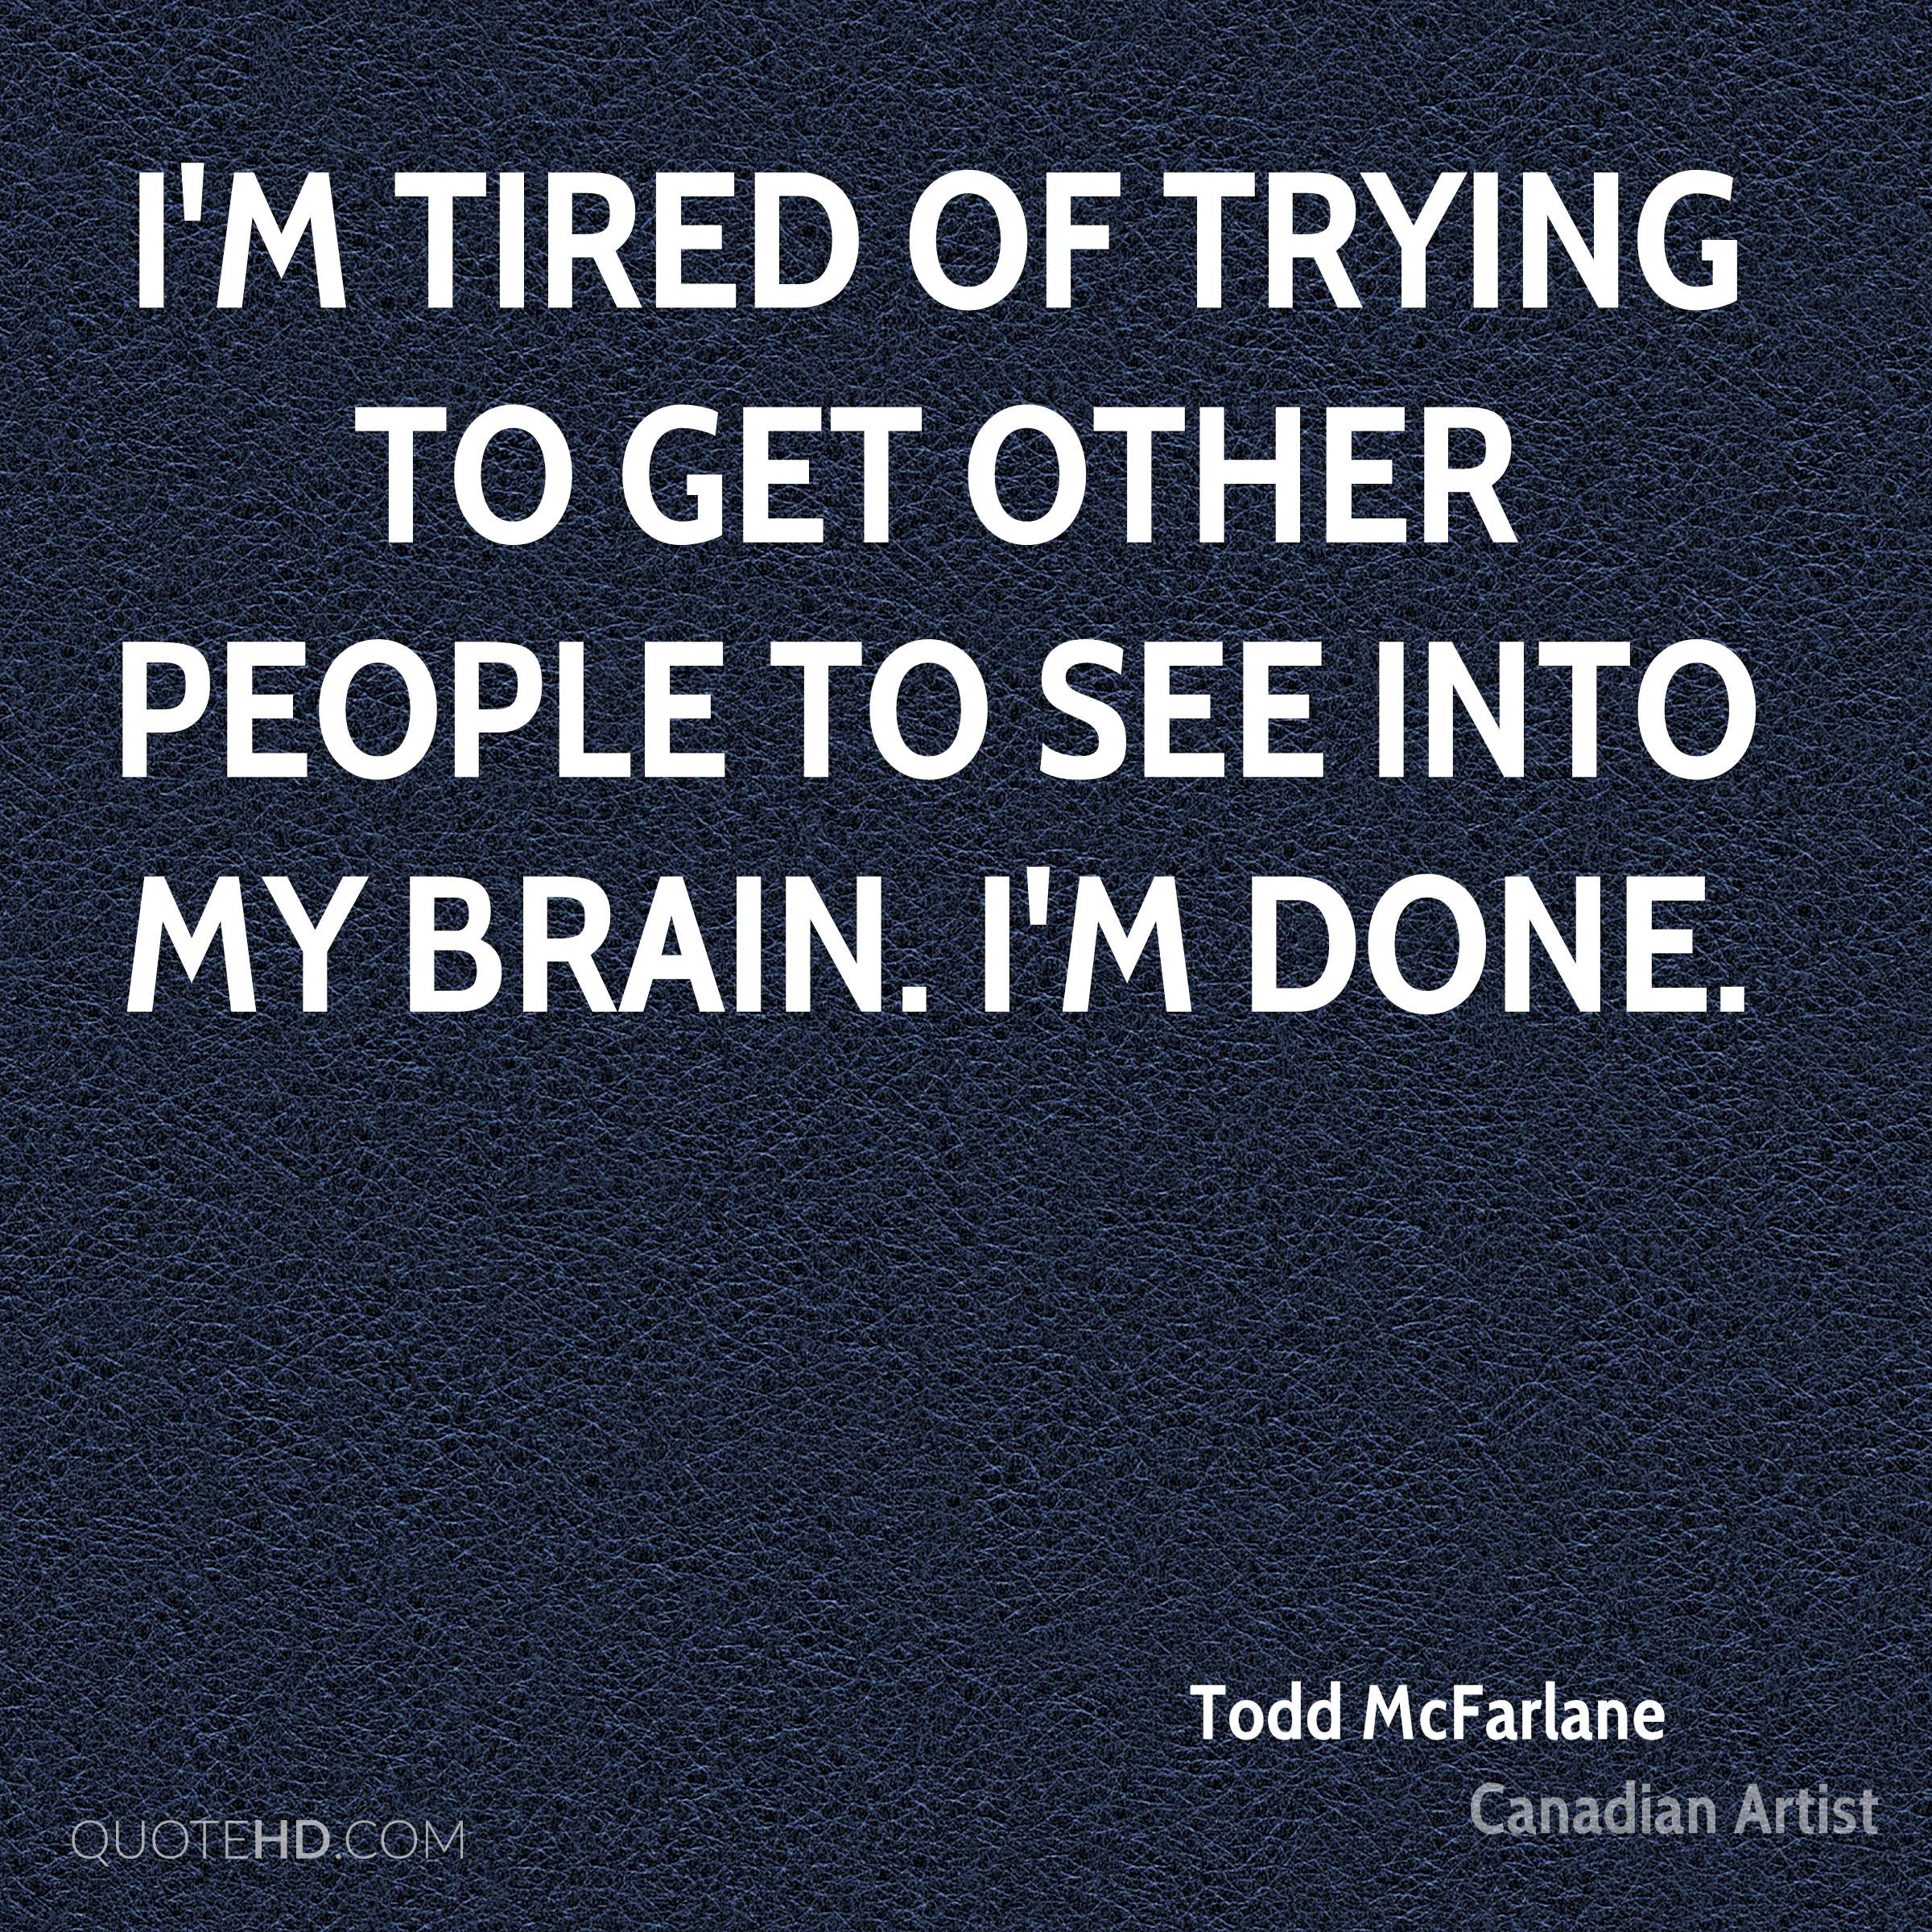 Todd McFarlane Quotes   QuoteHD